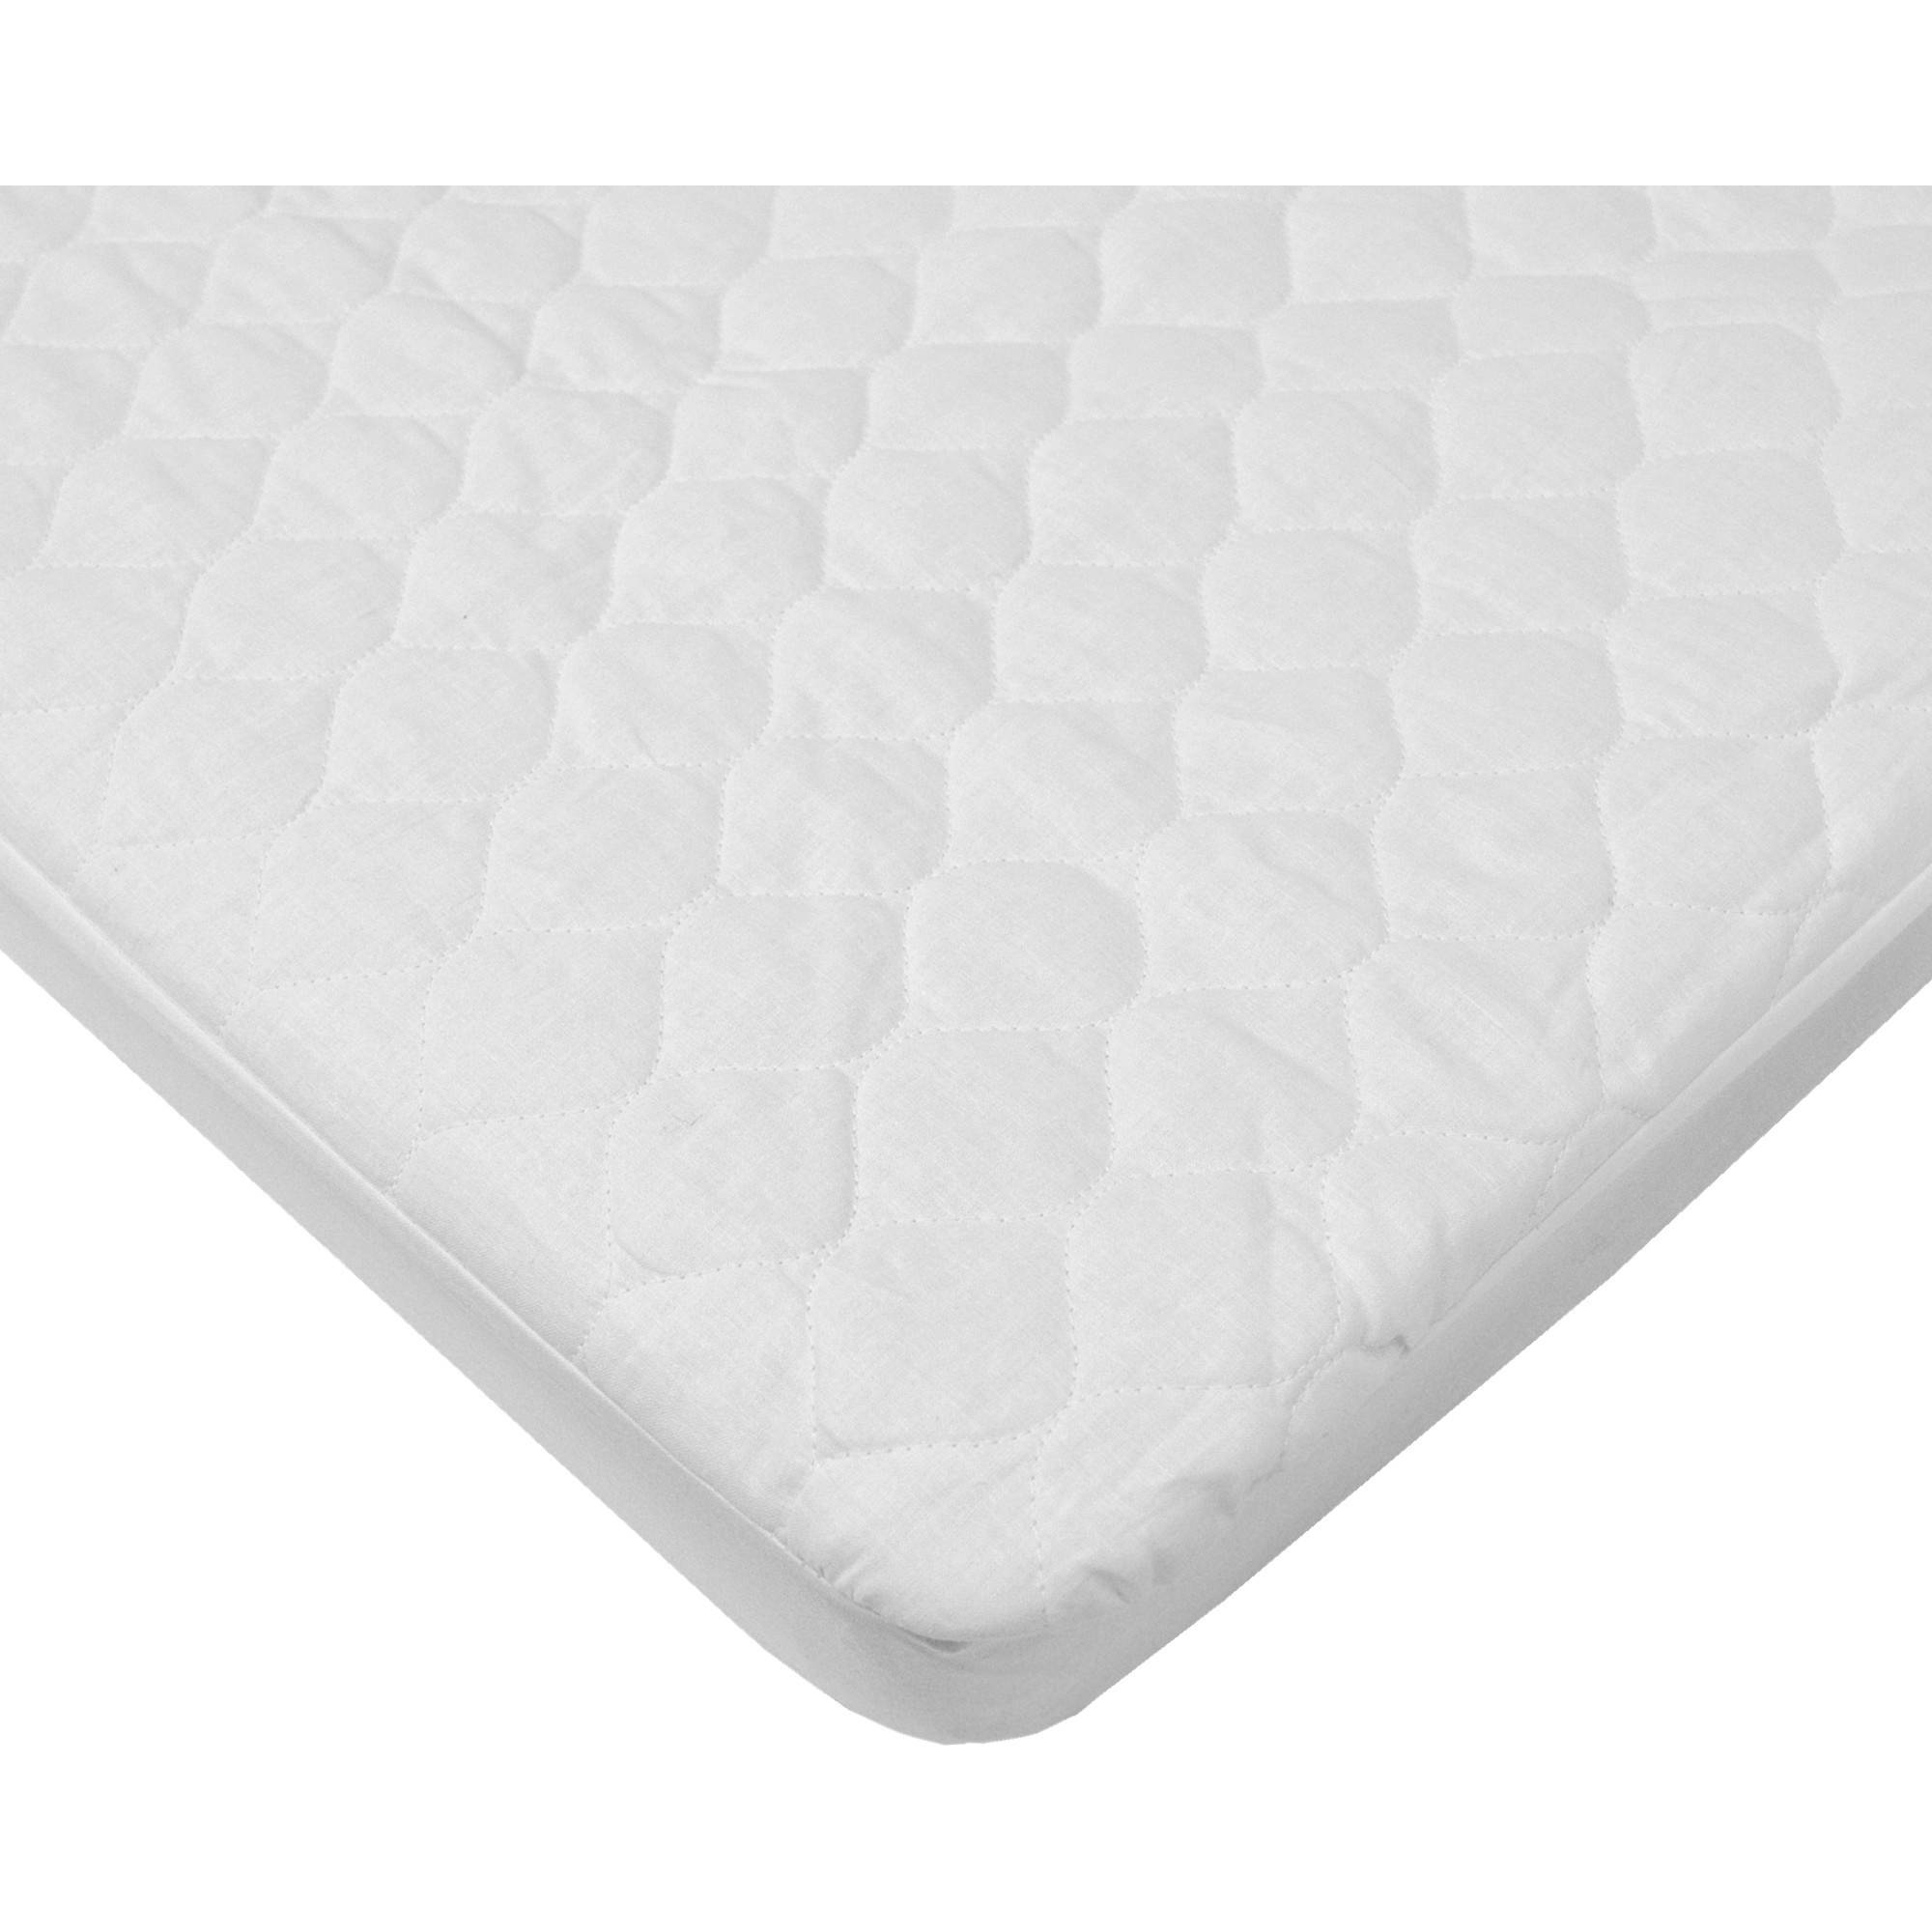 TL Care Quilted Fitted Waterproof Fitted Mini Crib Mattress Pad Cover